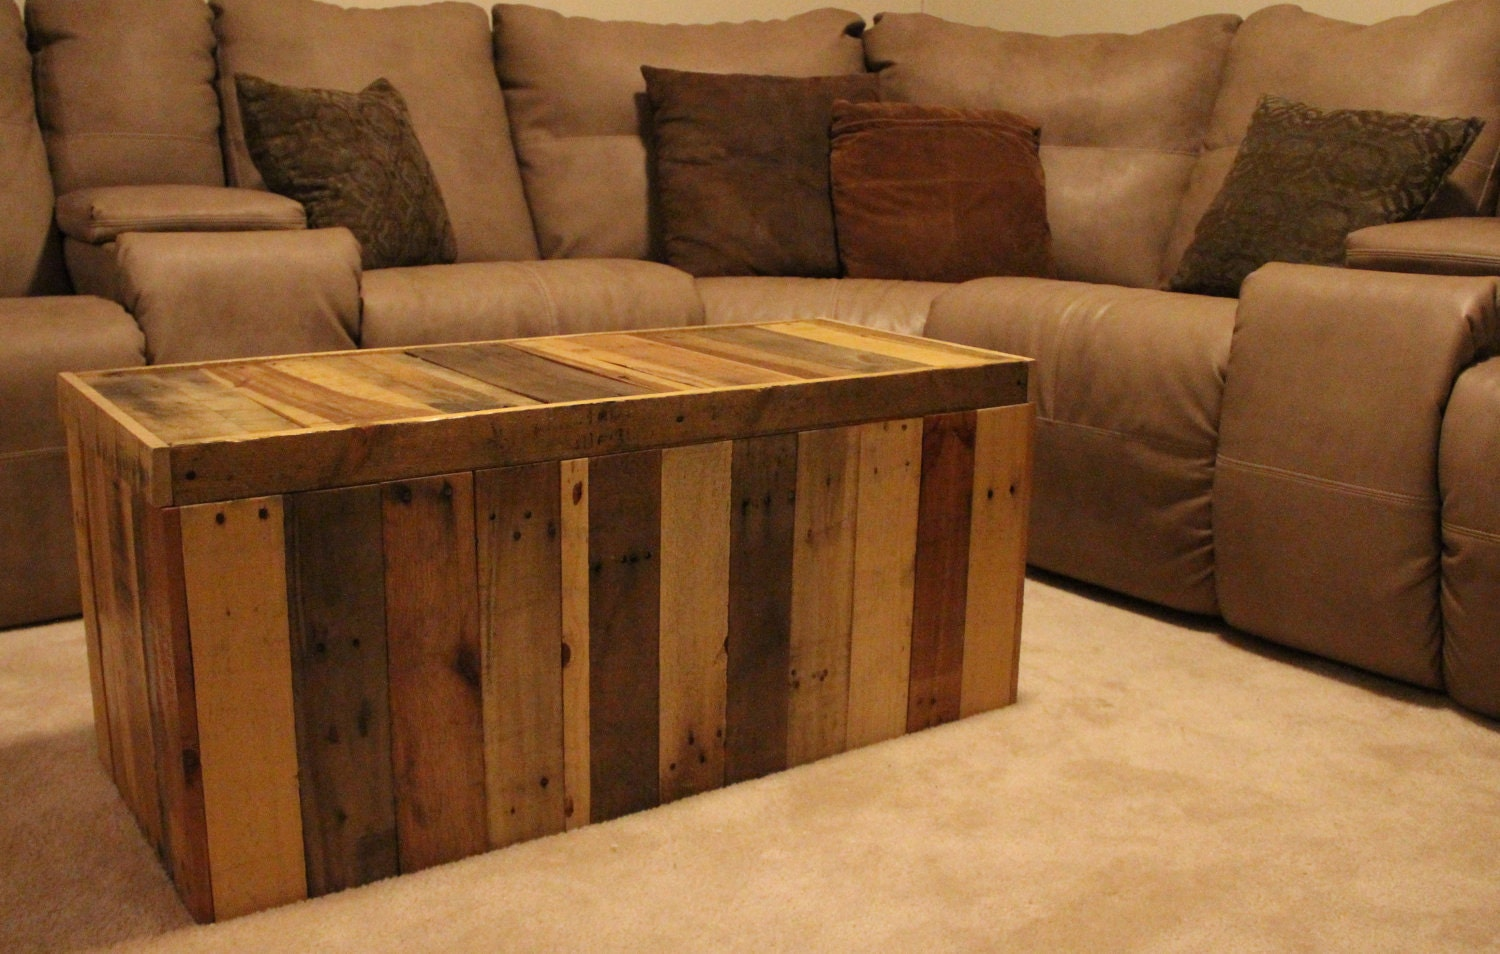 how to make a toy chest out of pallets | Quick Woodworking ...